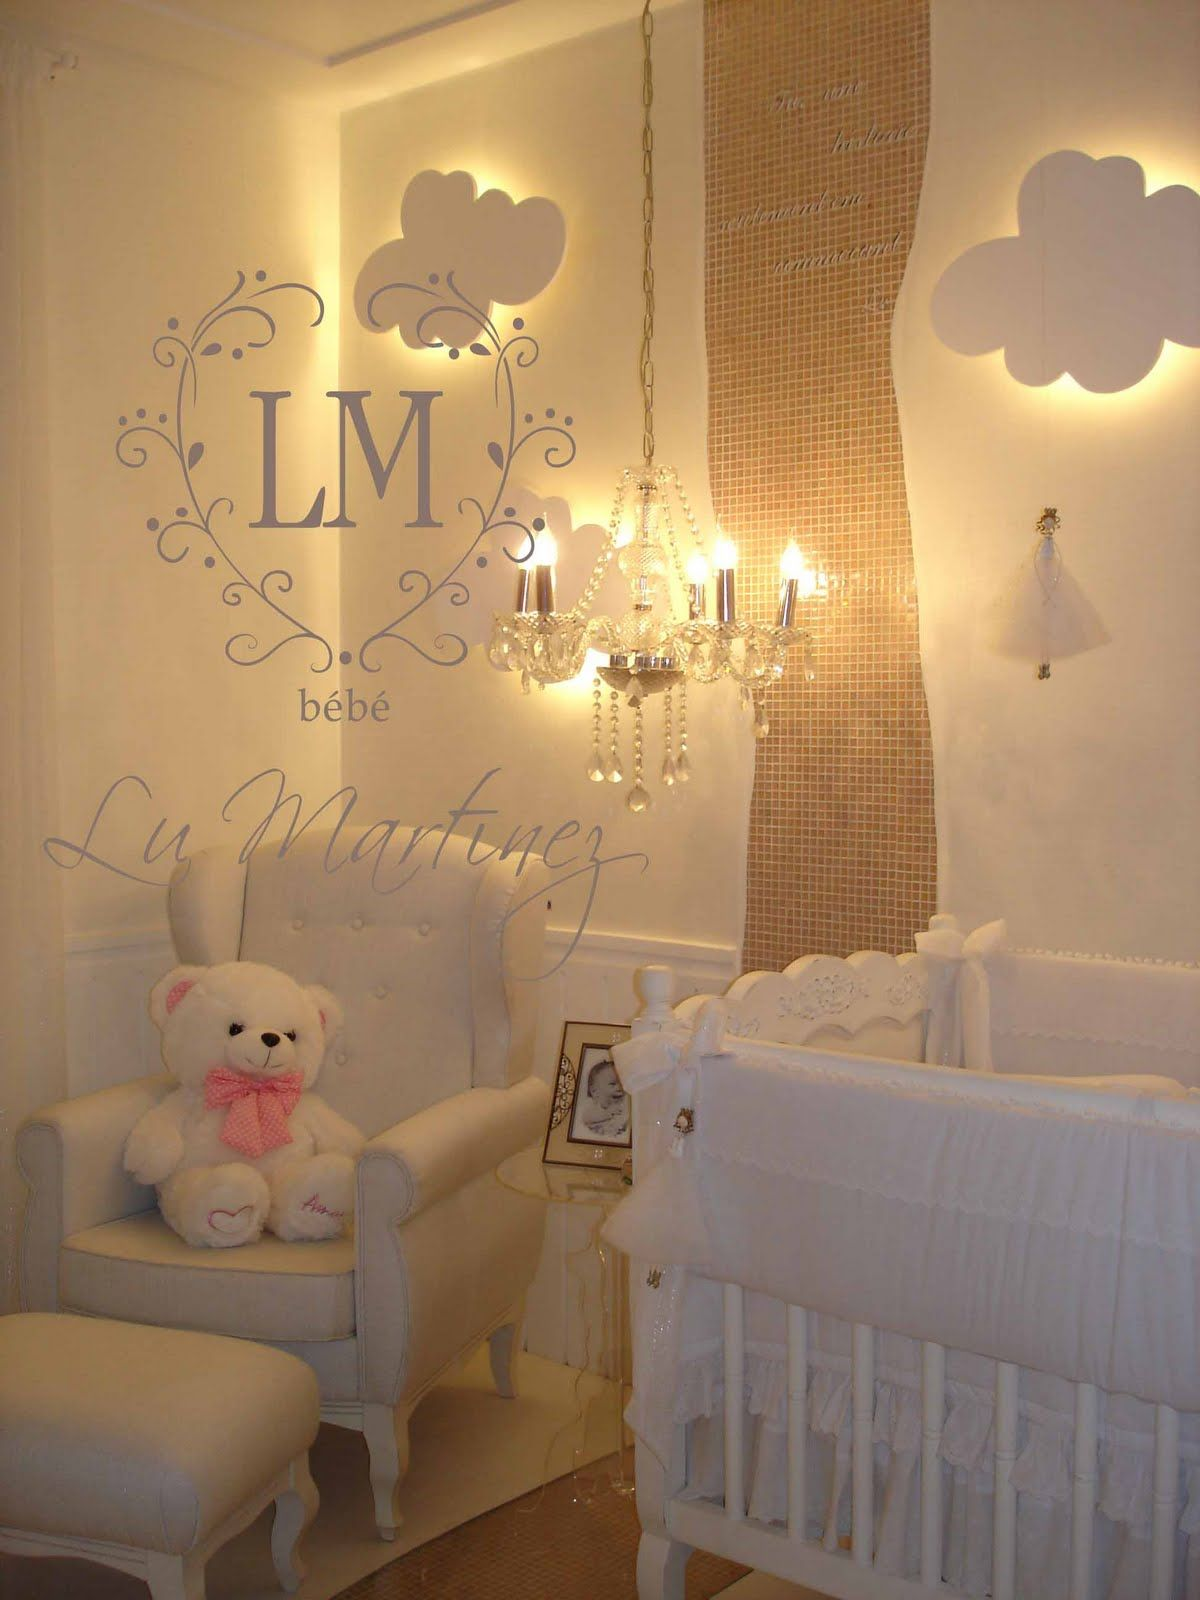 die wandlampen babyzimmer pinterest wandlampen kinderzimmer und babyzimmer. Black Bedroom Furniture Sets. Home Design Ideas